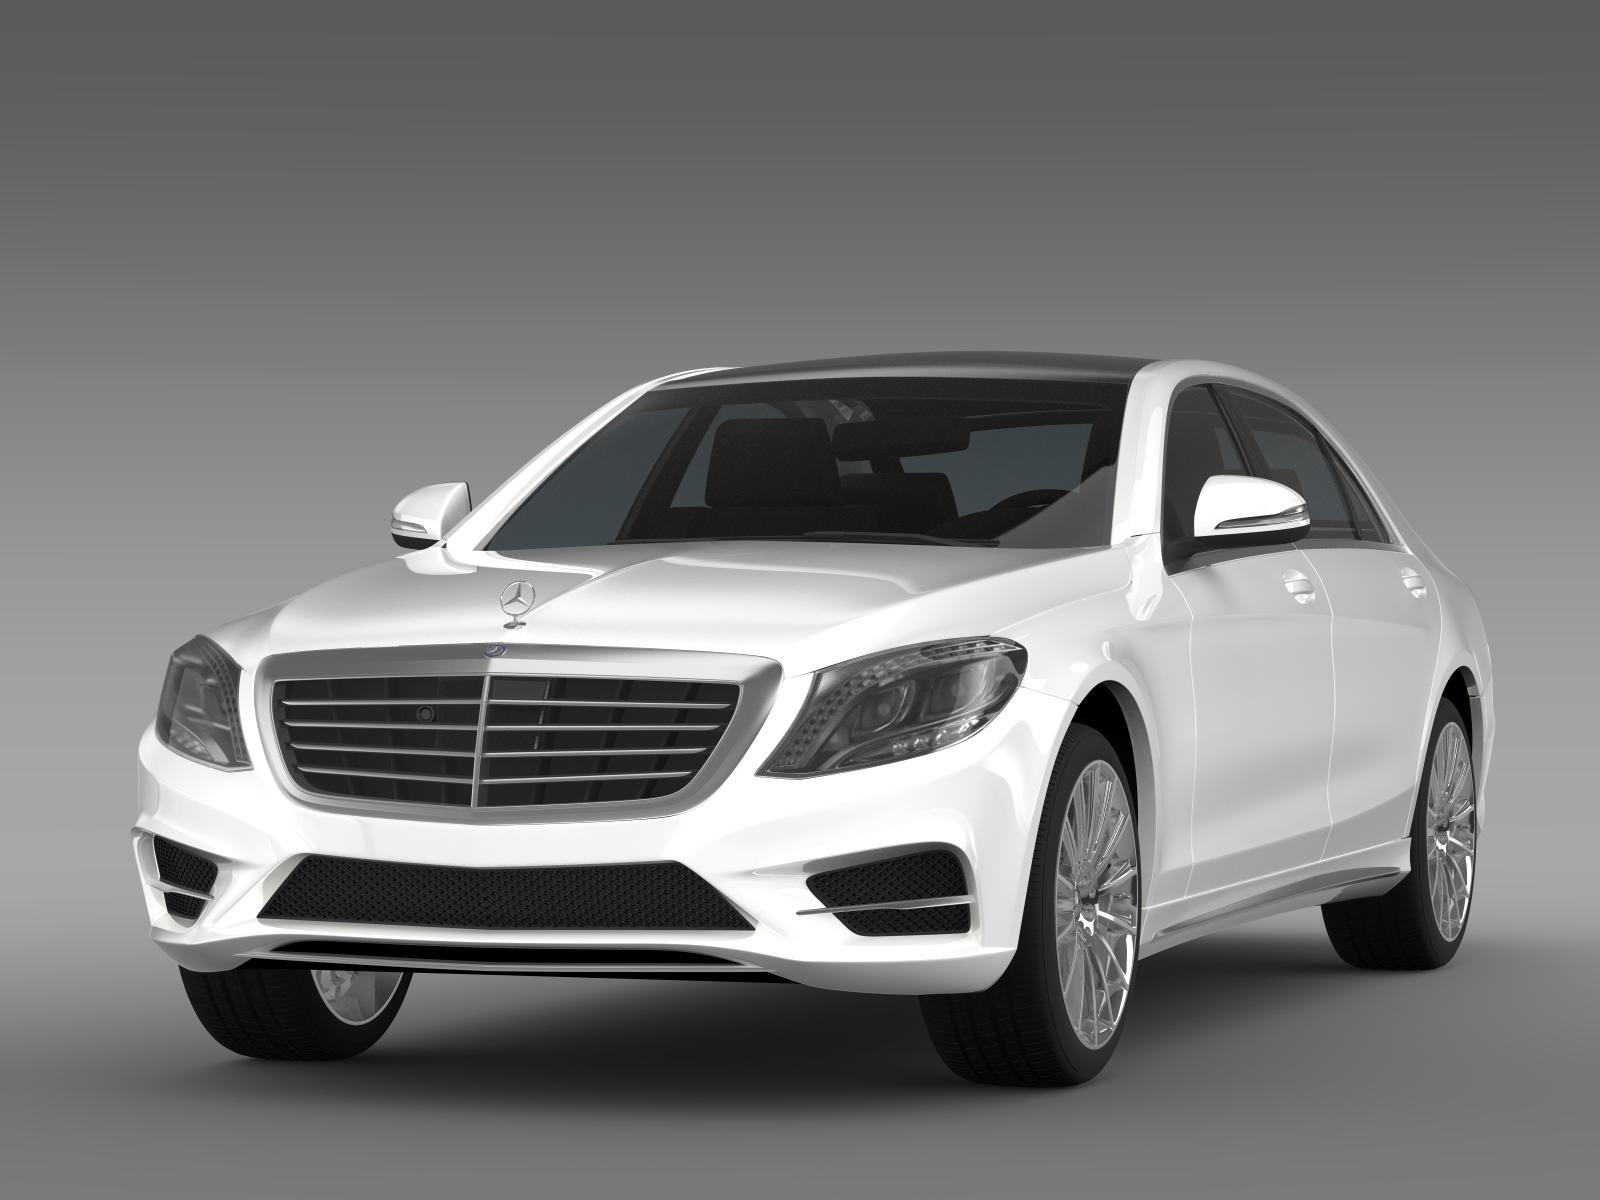 Amg mercedes benz s 500 plug in hybrid w222 2014 3d model for Hybrid mercedes benz